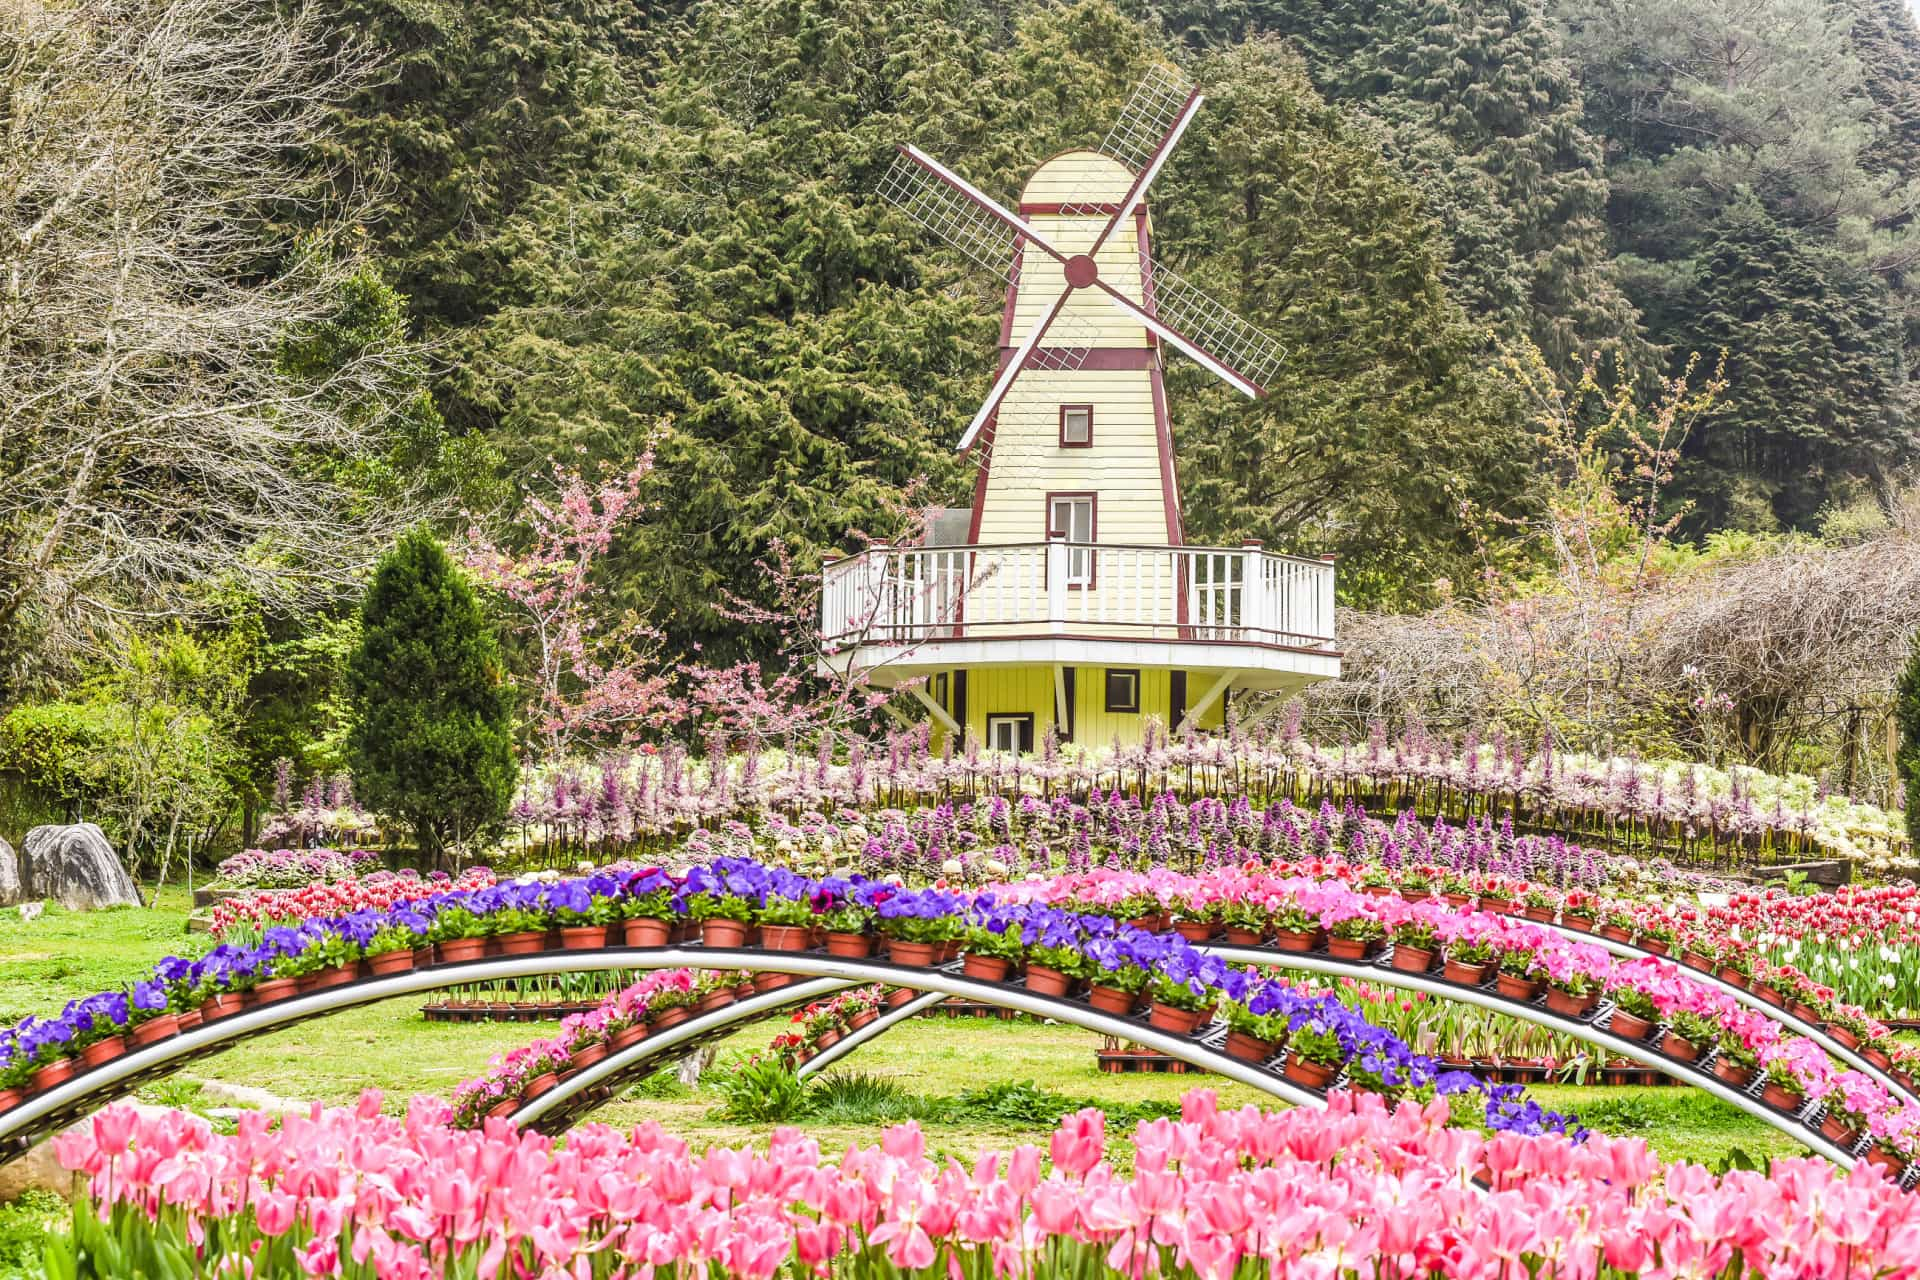 The world's most beautiful flower fields to visit